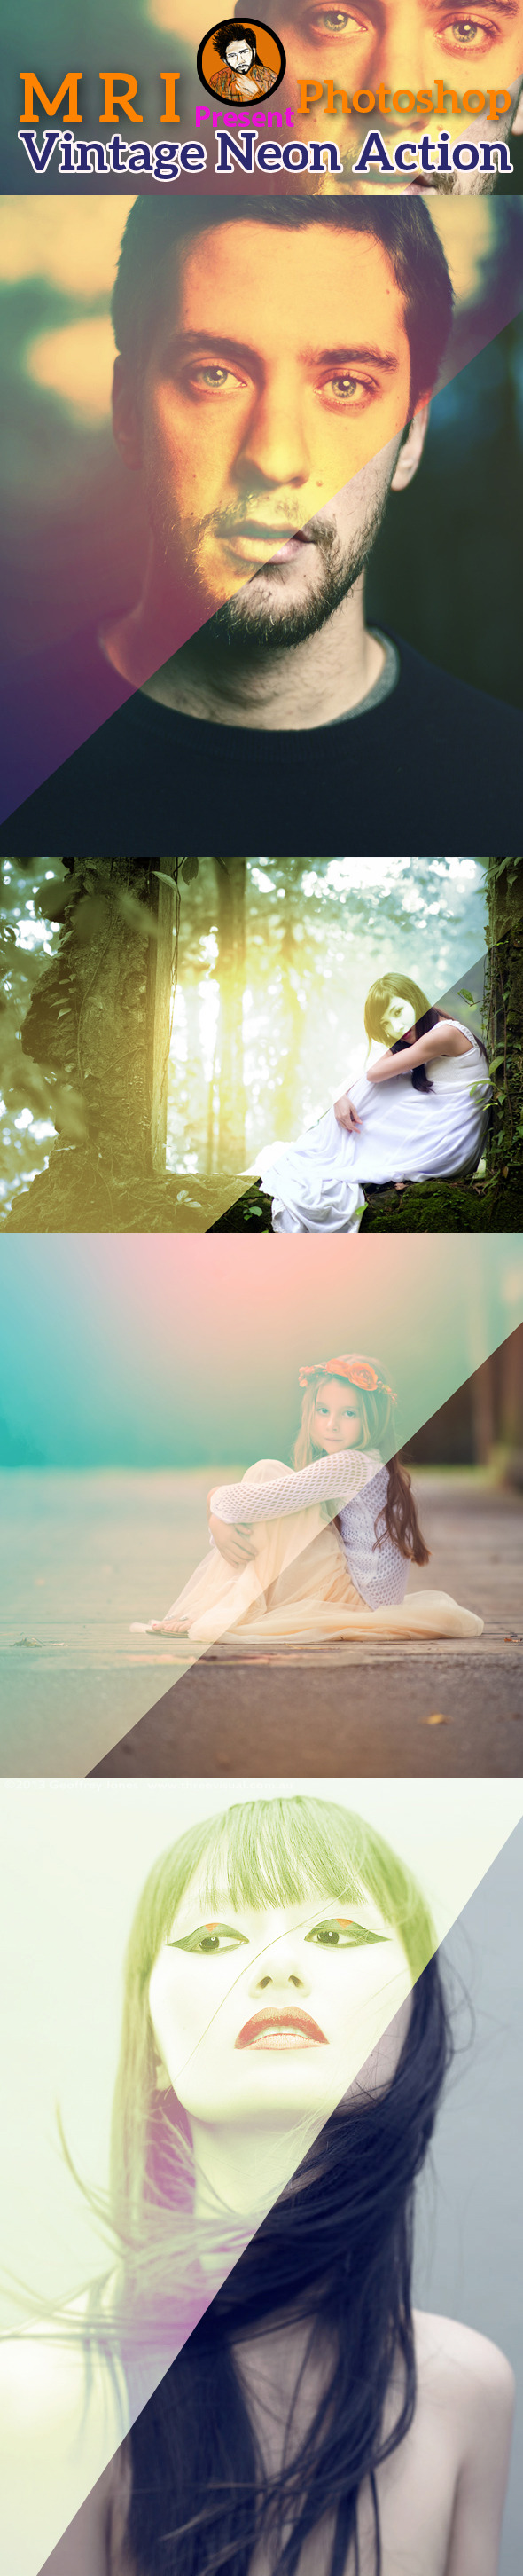 Vintage Light Leaks Action - Actions Photoshop